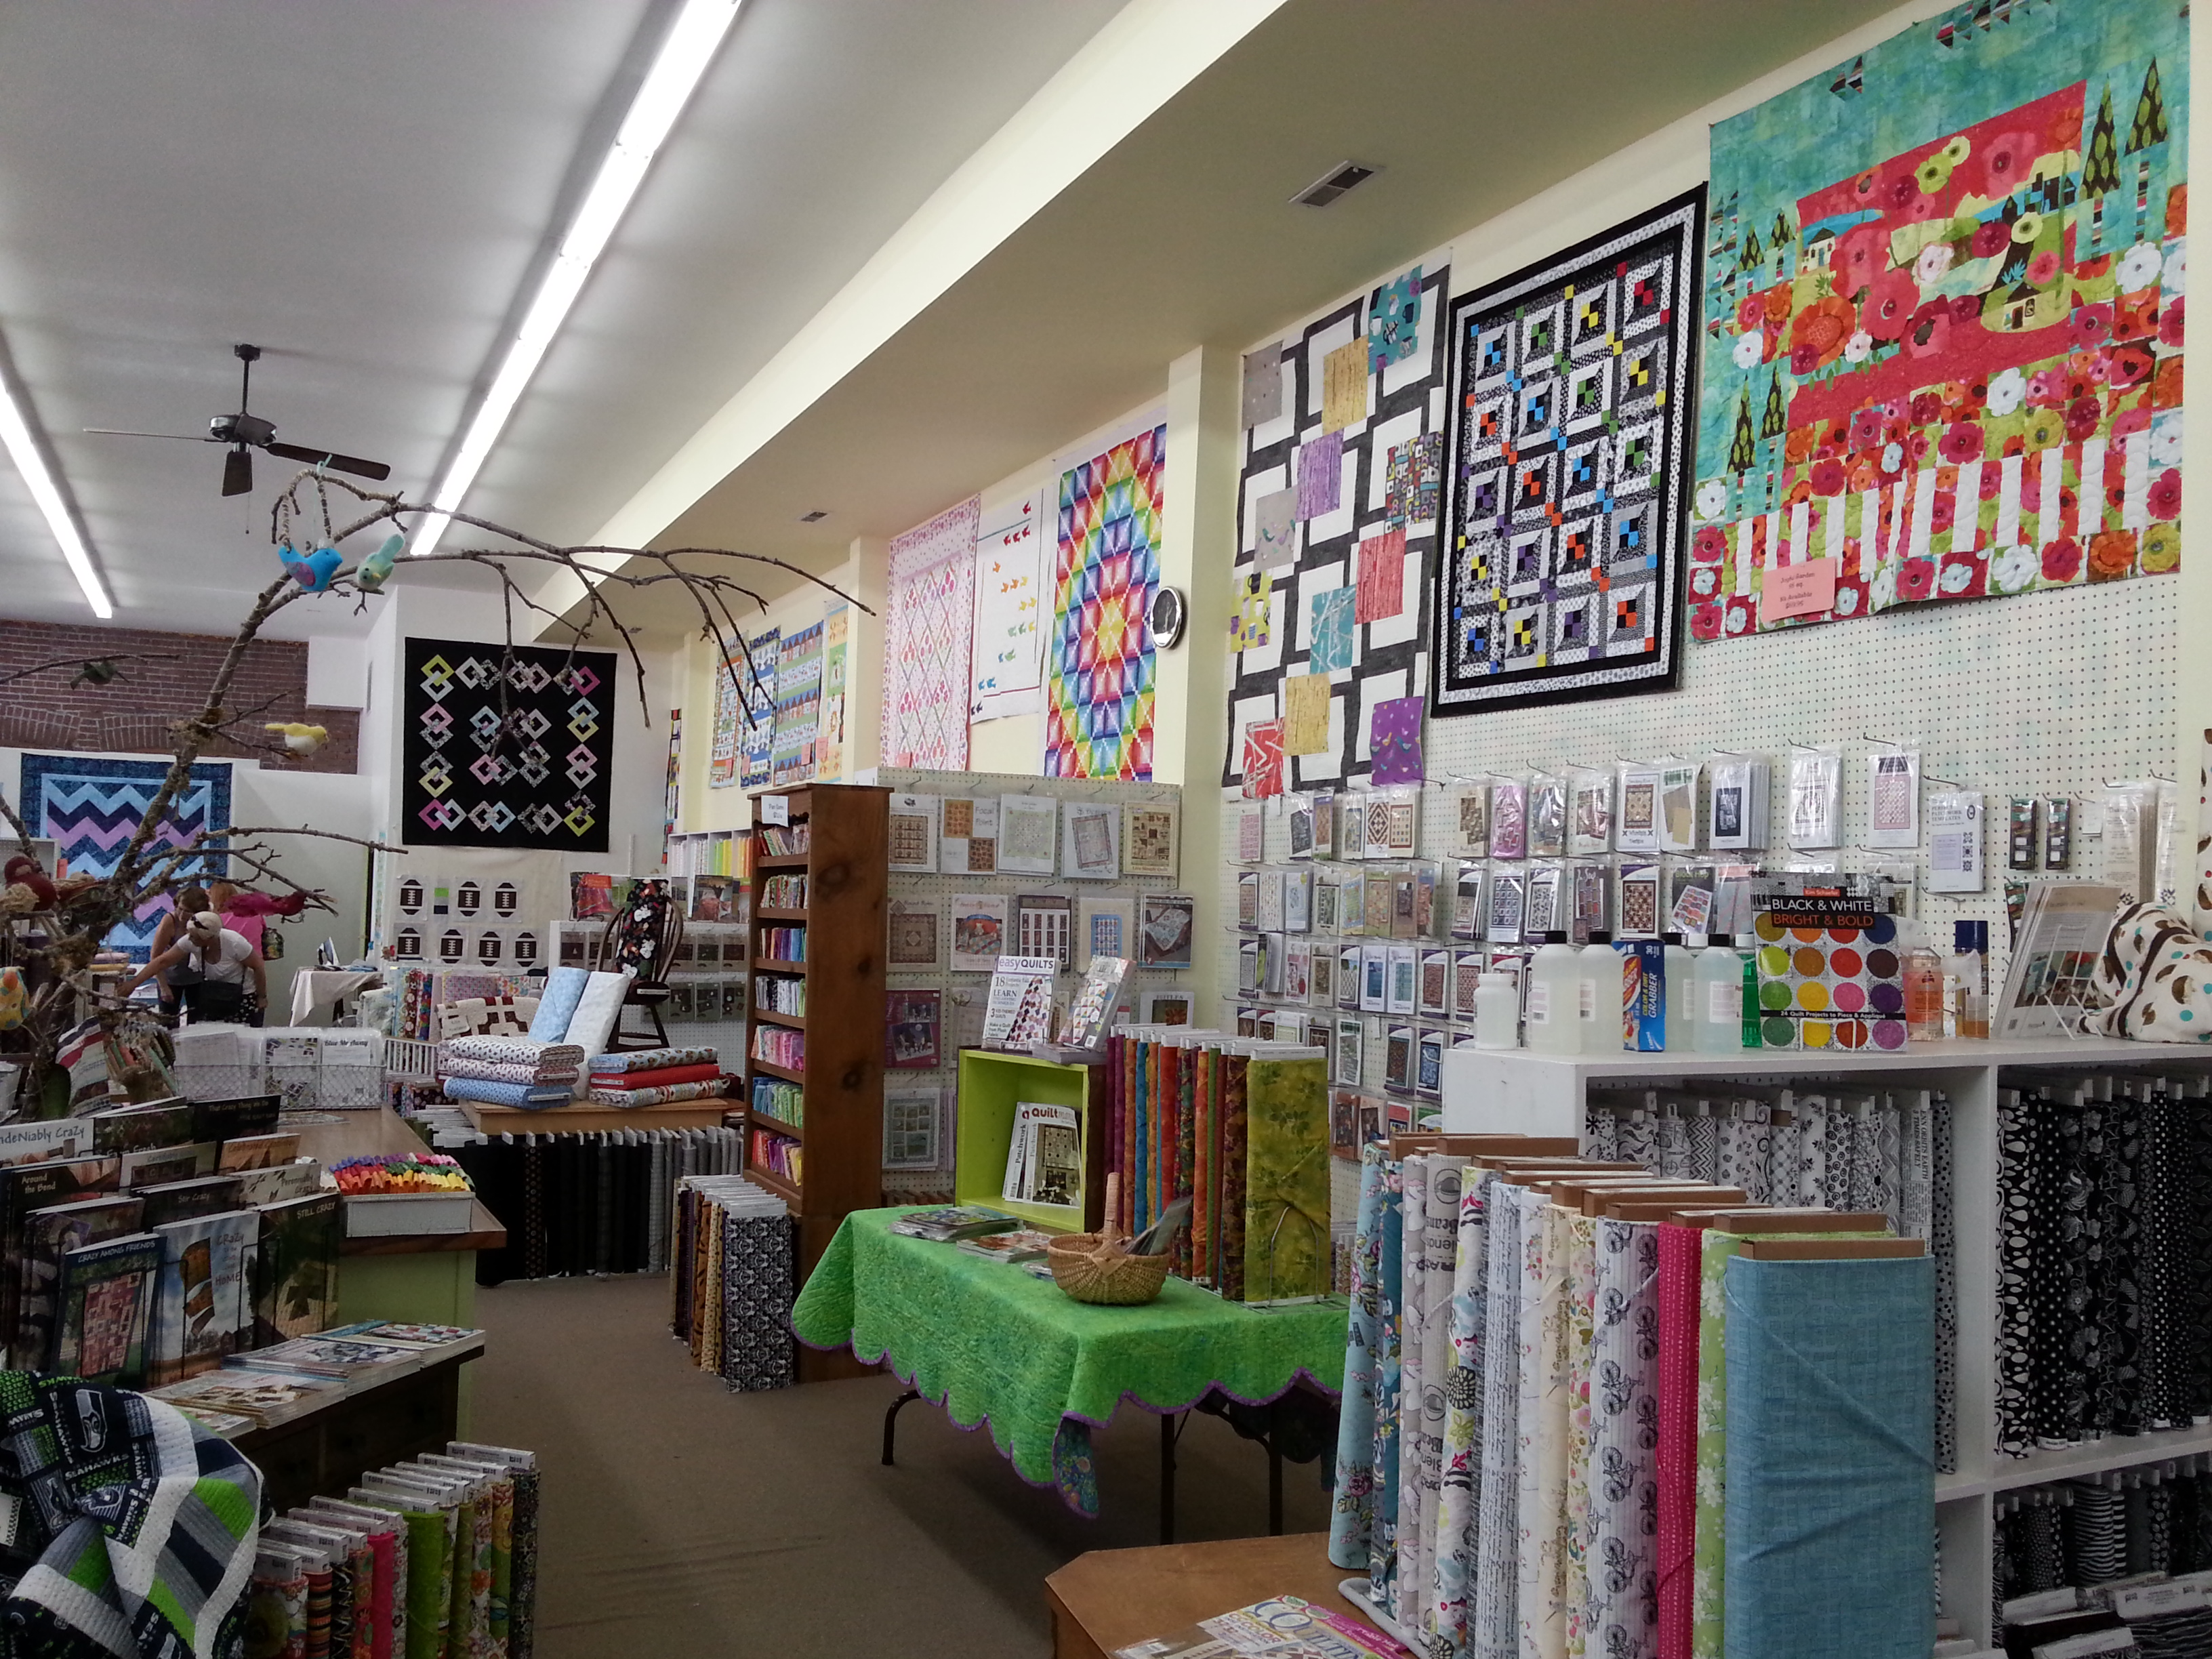 Quilt Shop Tour of Calico Creations, Mount Vernon, WA | Dragonfly ... : creations quilt shop - Adamdwight.com